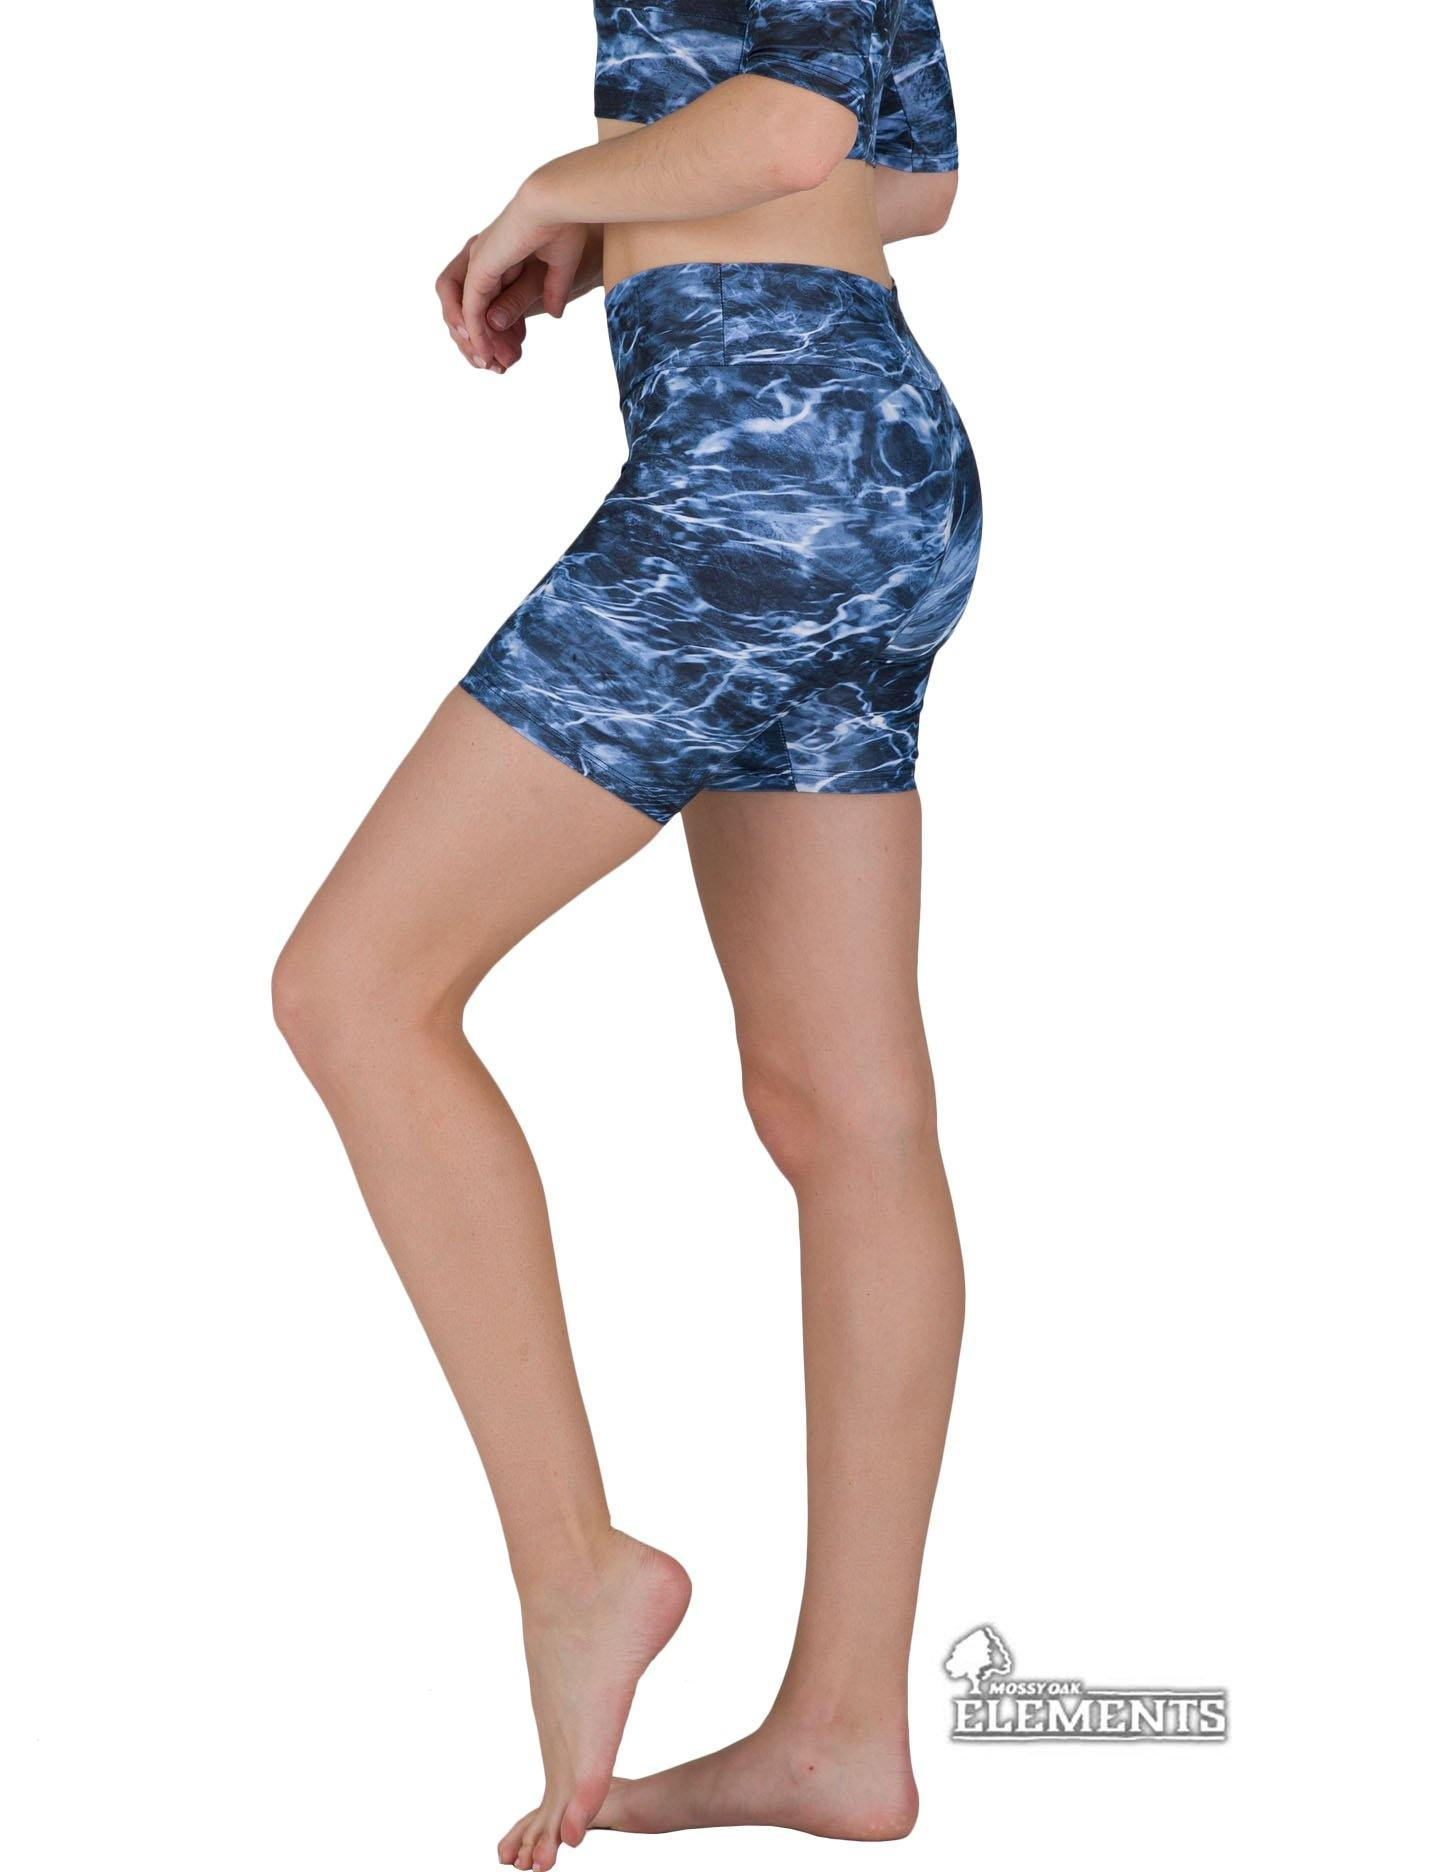 Apsara Shorts Low Waist, Mossy Oak Elements Marlin - Apsara Style